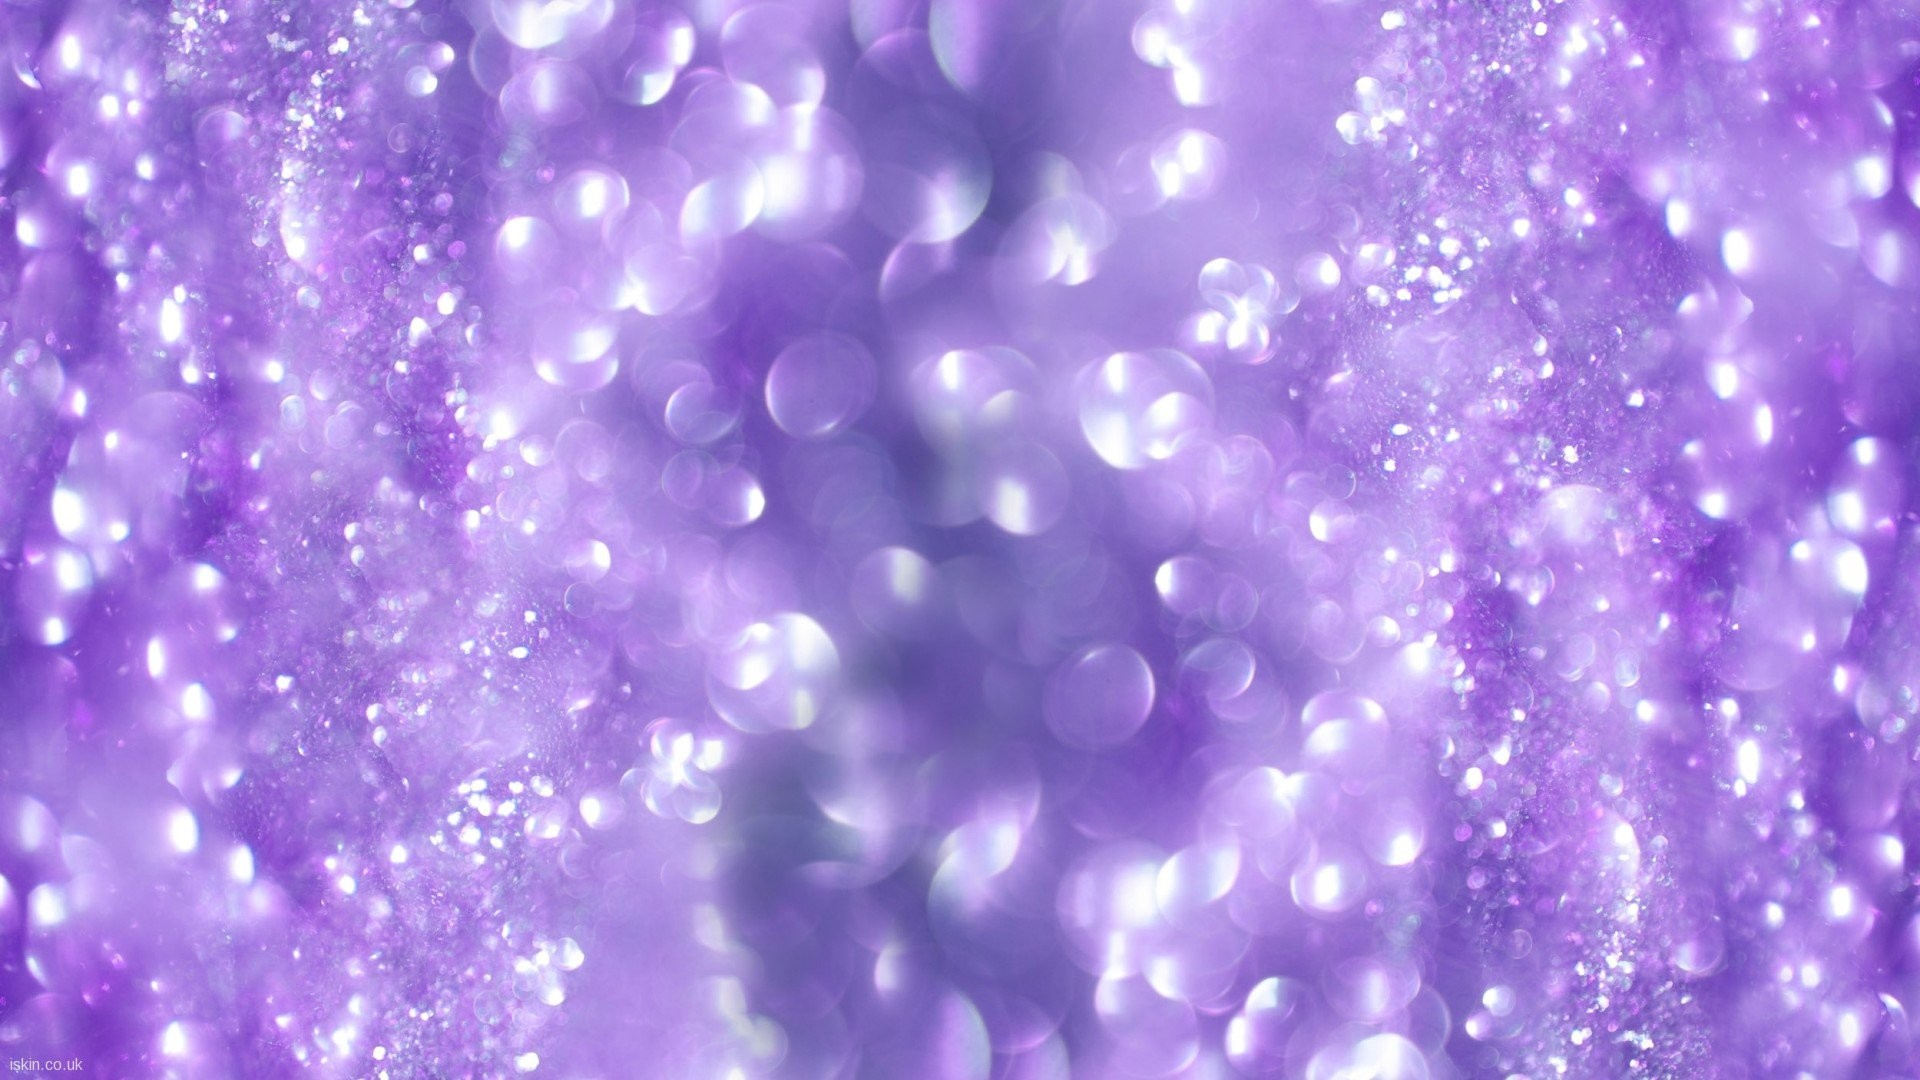 Colorful Sky Wallpaper Sparkly Purple Background